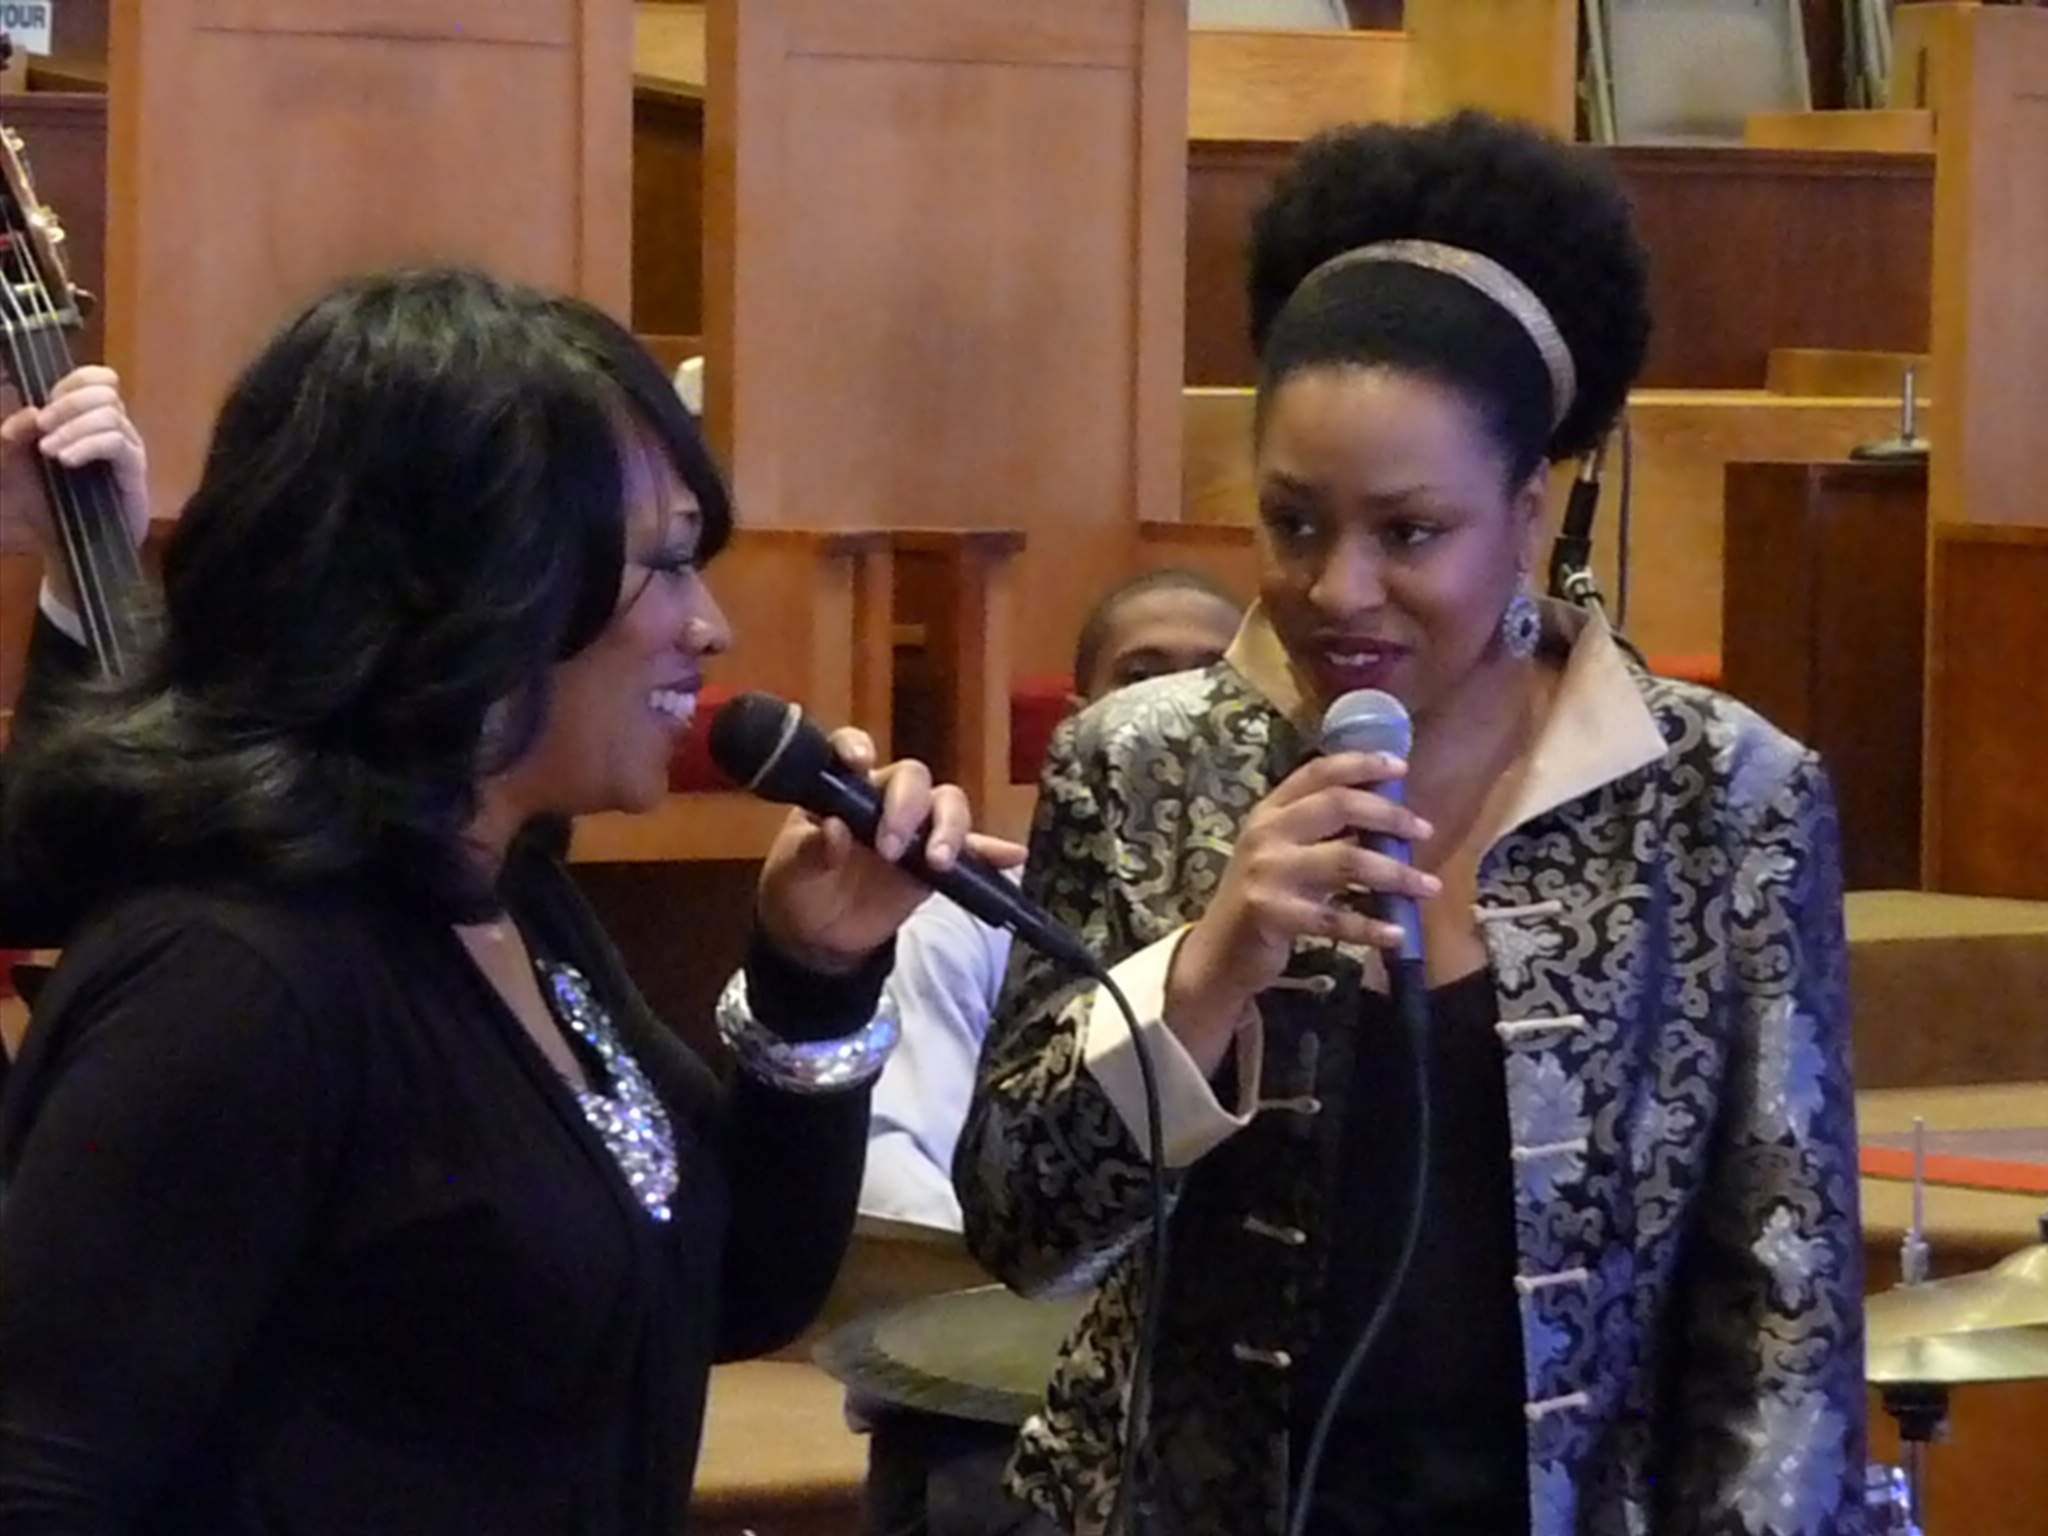 Evelyn Wright and Charenee Wade at Tri-C Jazzfest Cleveland 2011